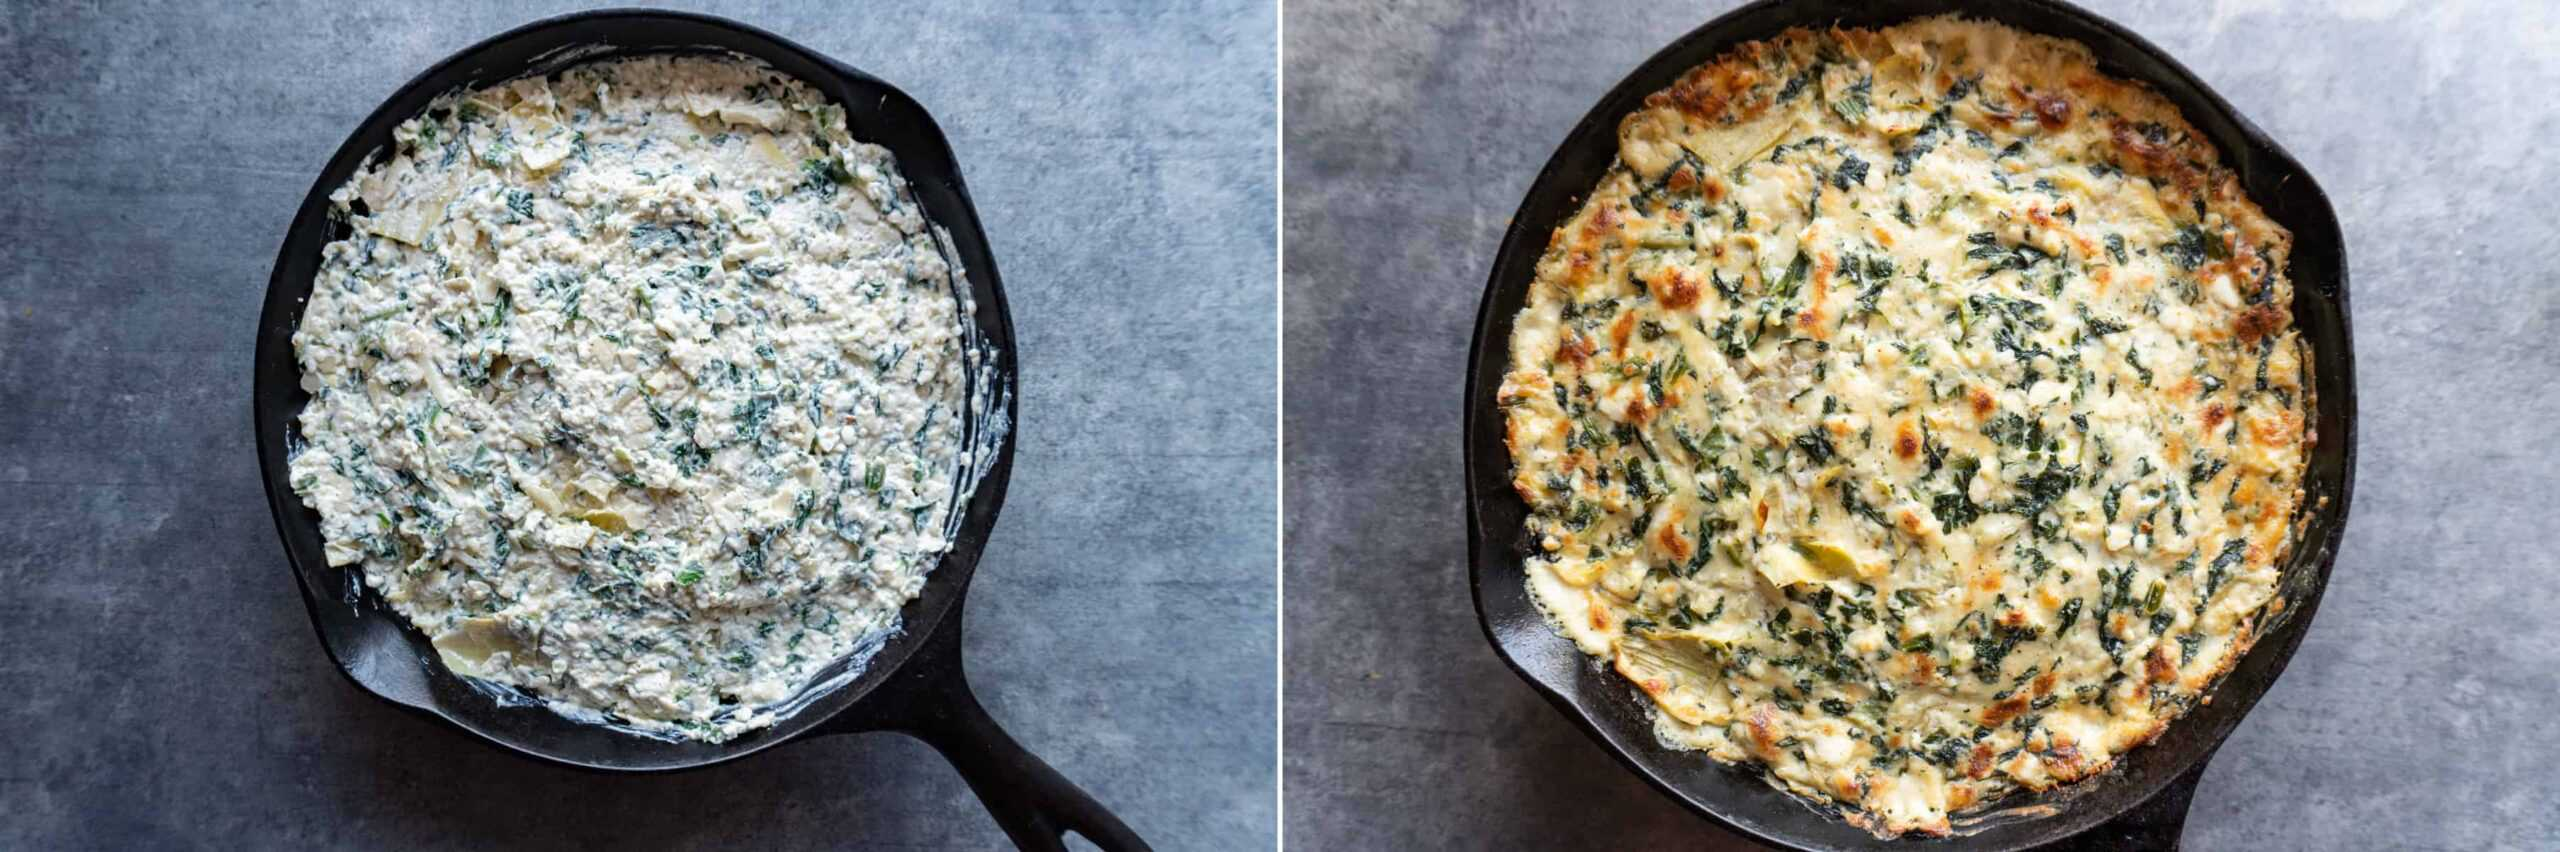 Before and after baking artichoke dip